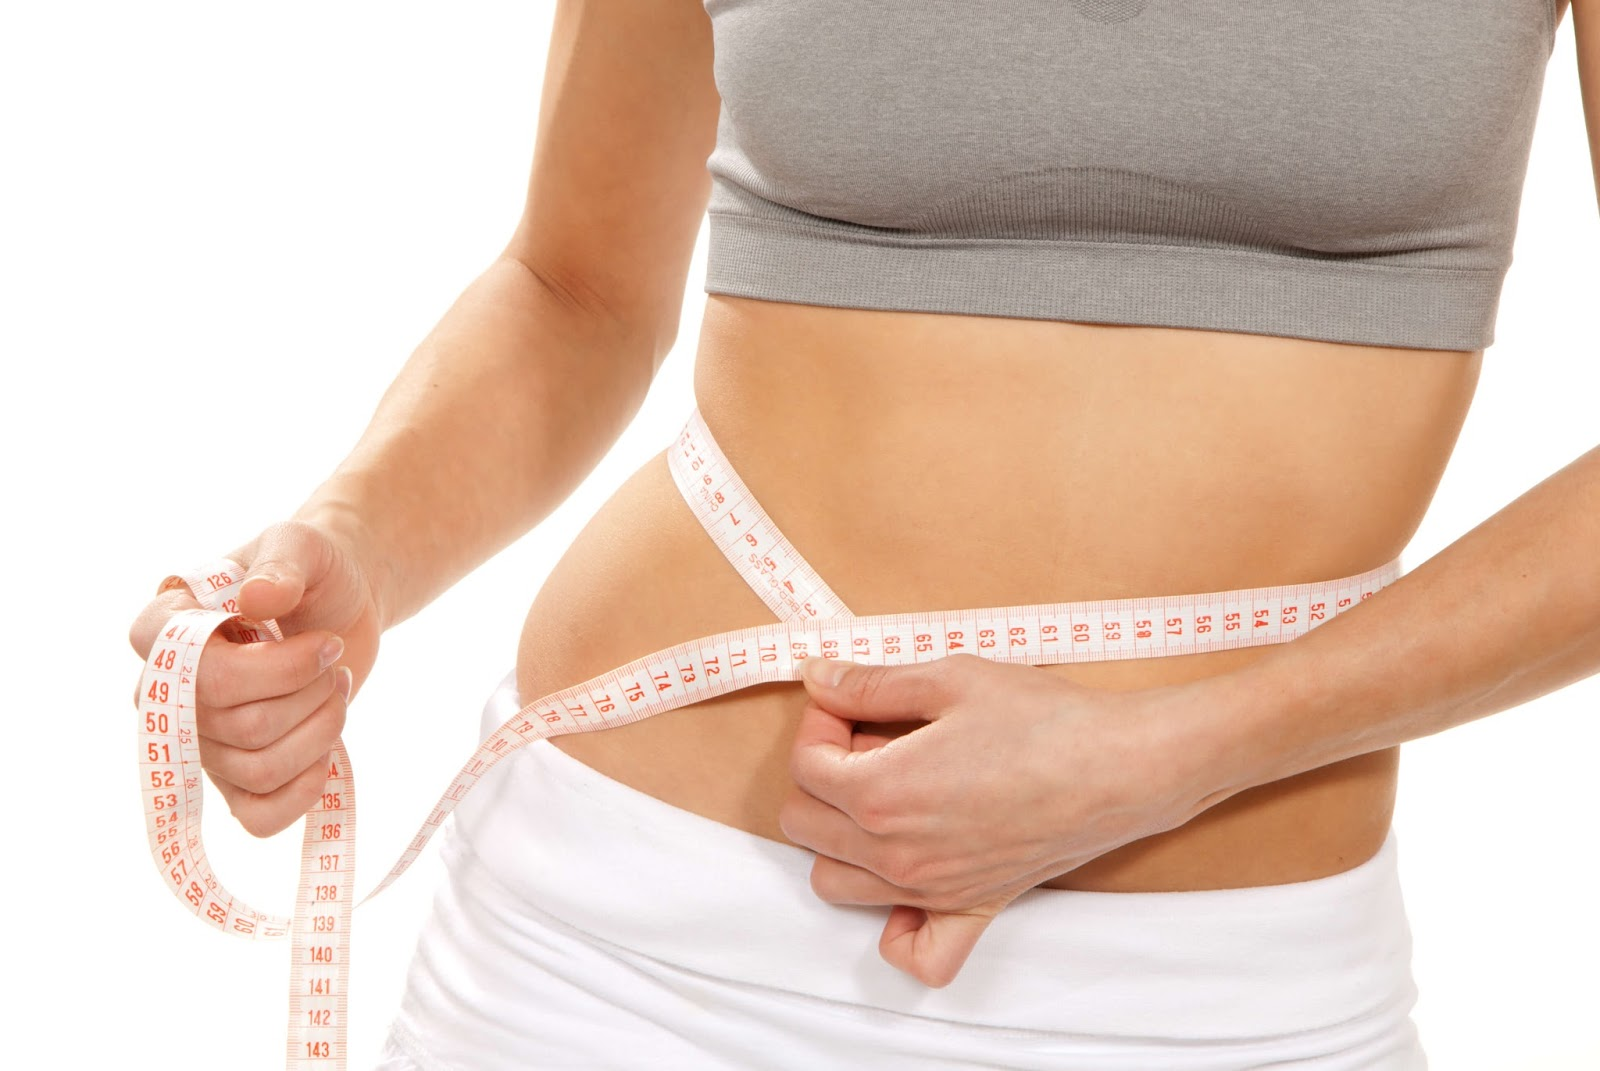 how to lose weight in 2 weeks without exercise best 2 week dite